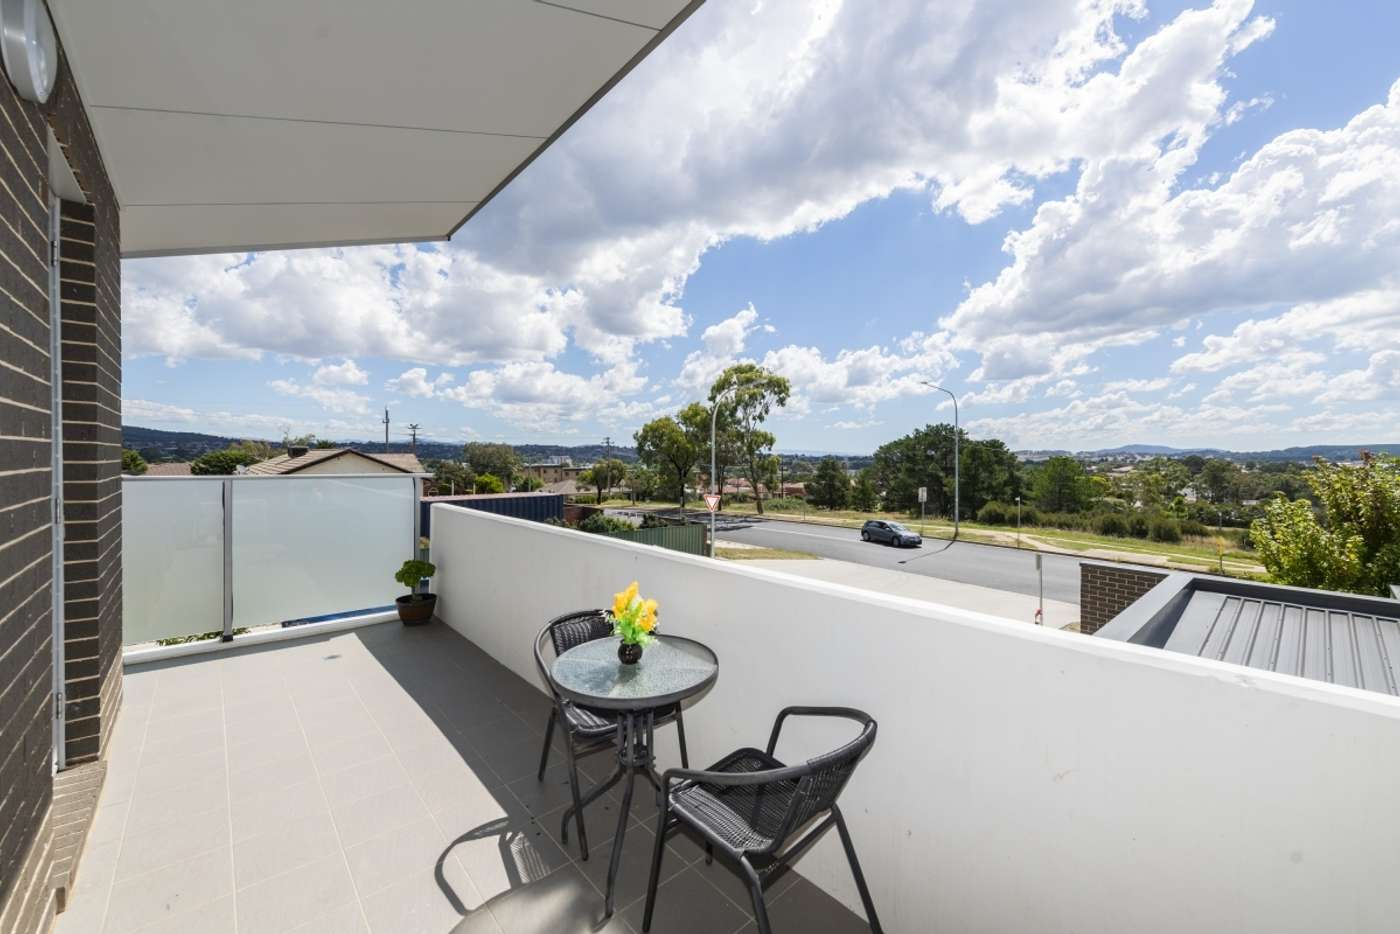 Main view of Homely unit listing, 5/47-49 Mowatt Street, Queanbeyan NSW 2620